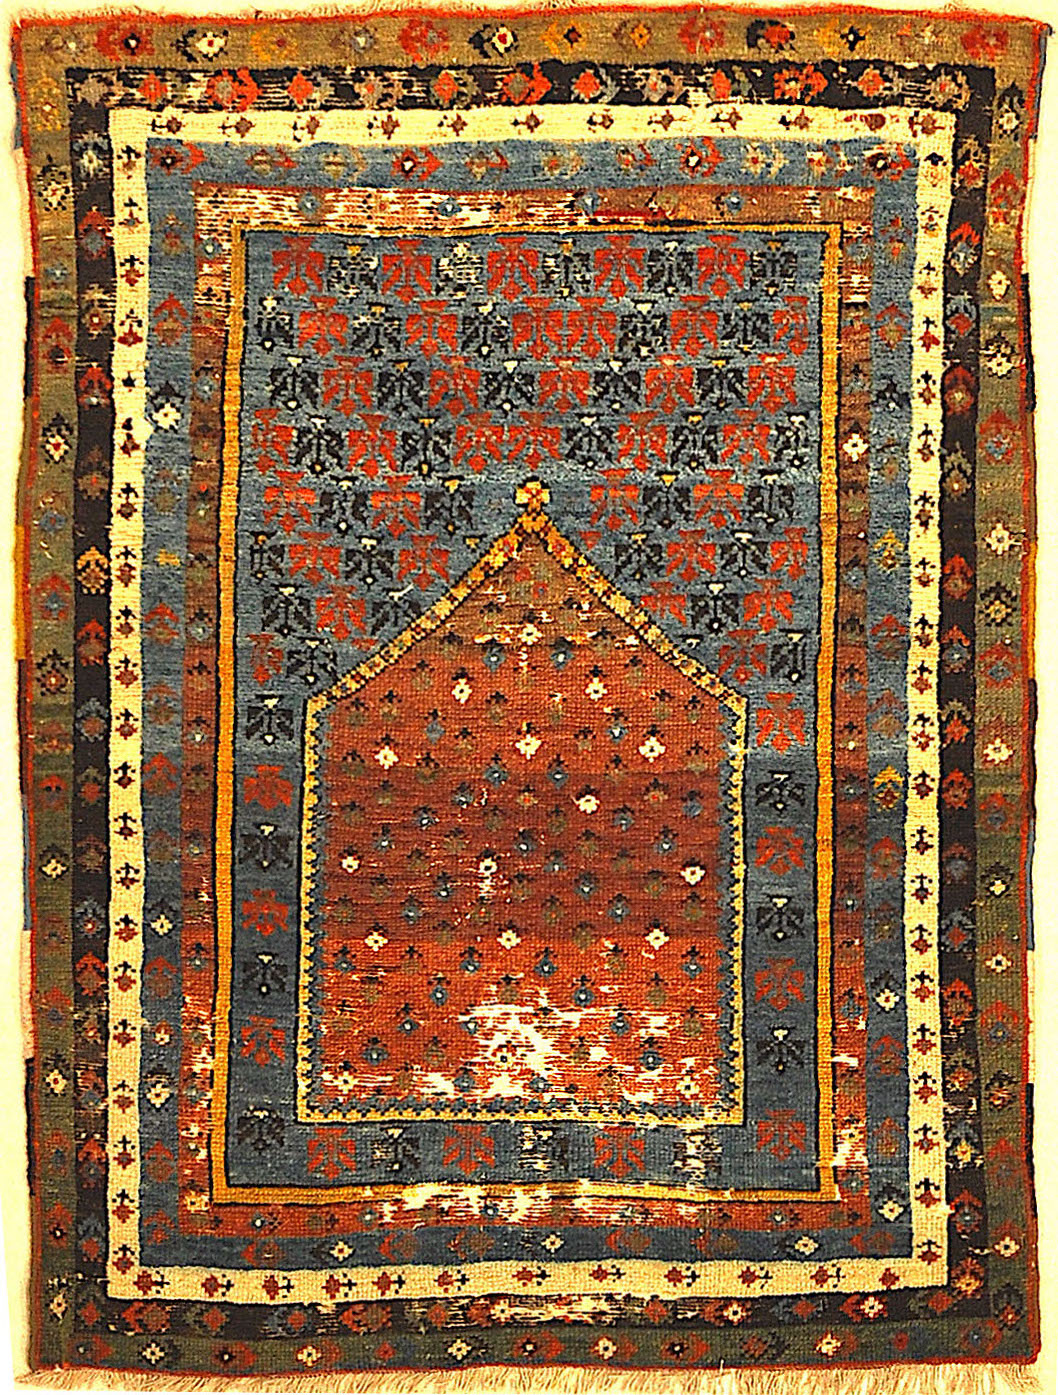 Antique Turkish Prayer Rug A piece of genuine, authentic woven carpet art sold by the Santa Barbara Design Center, Rugs and More.